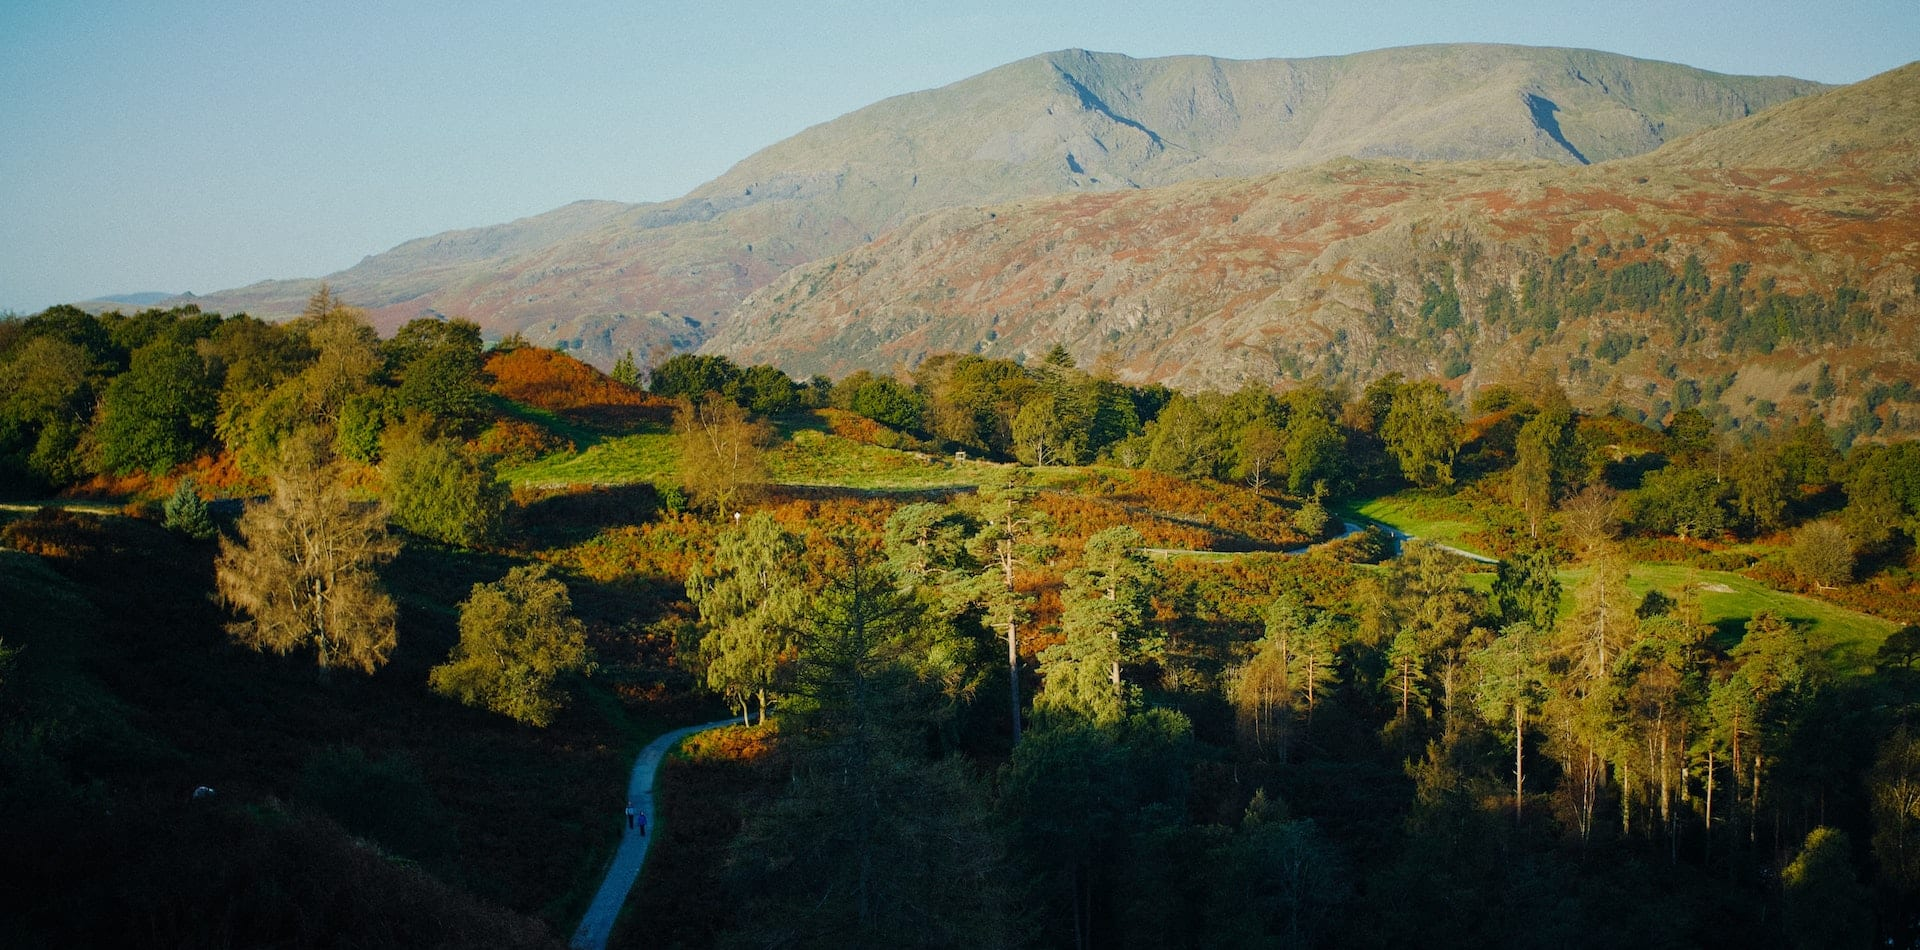 winding road through an autumn landscape in Wales, United Kingdom